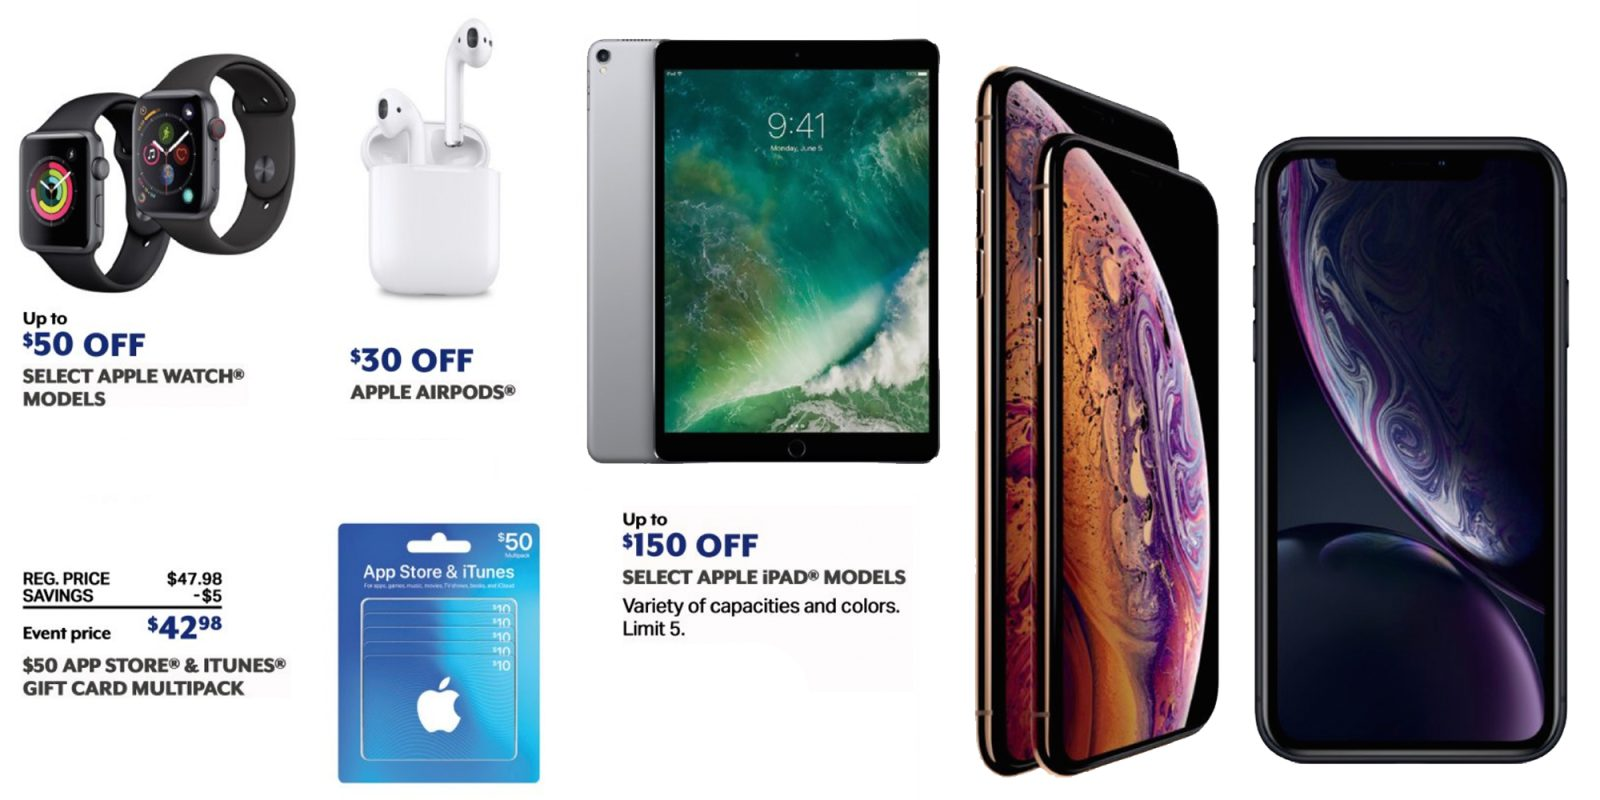 Sam's Club annual 1-day sale delivers deals on AirPods, iPad Pro